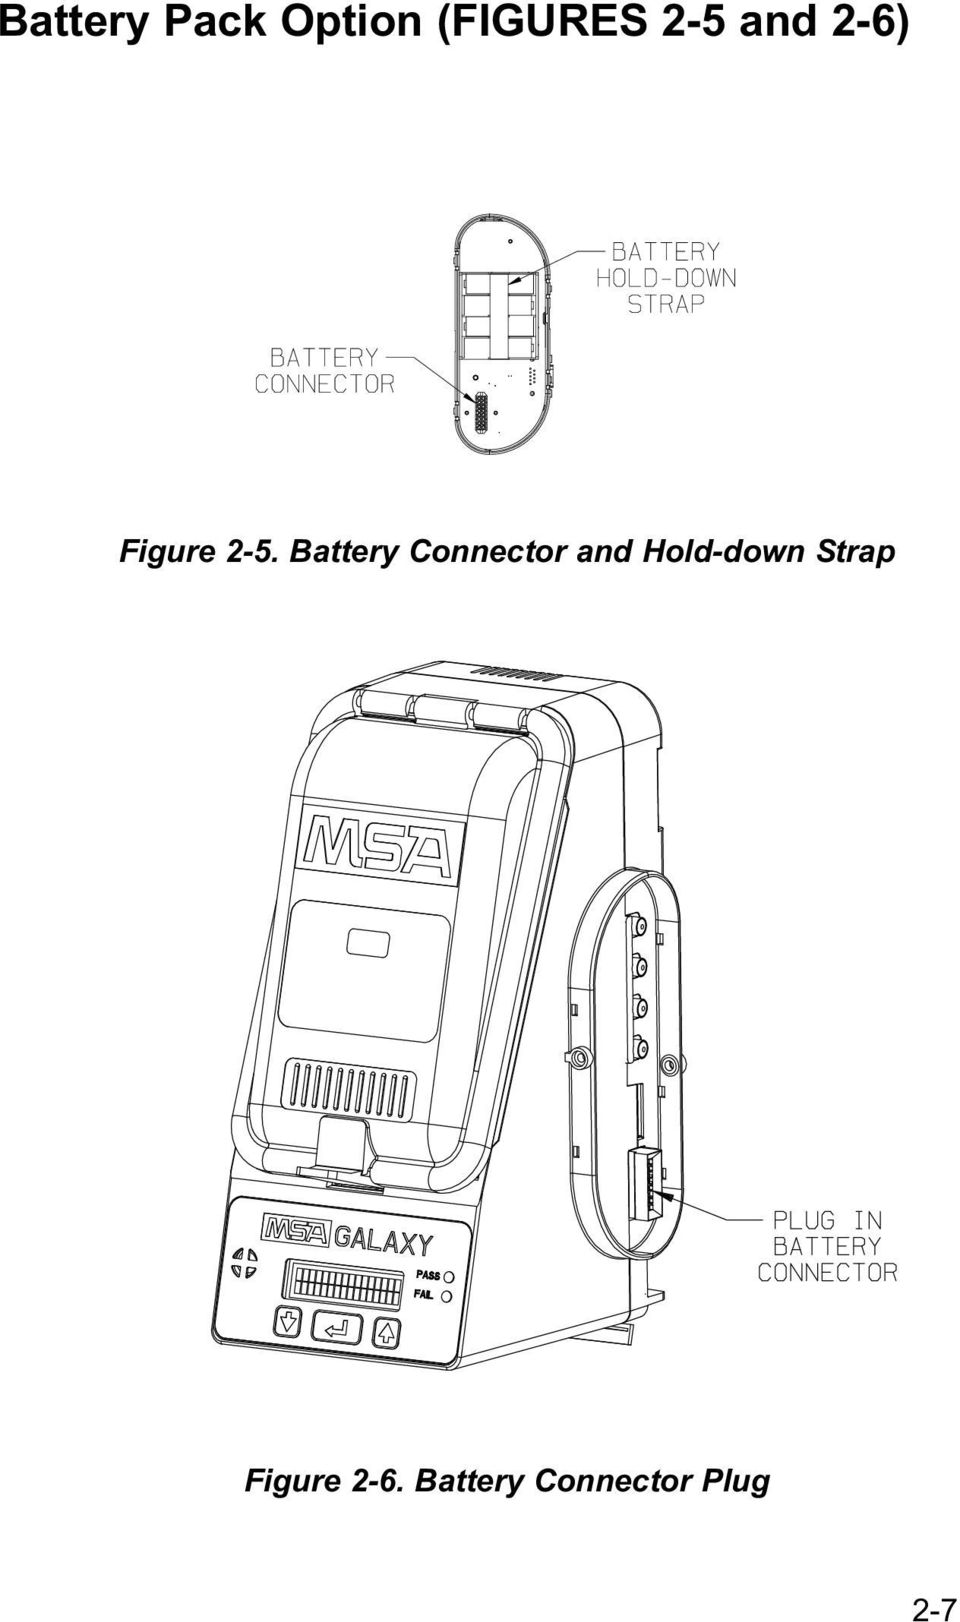 Battery Connector and Hold-down